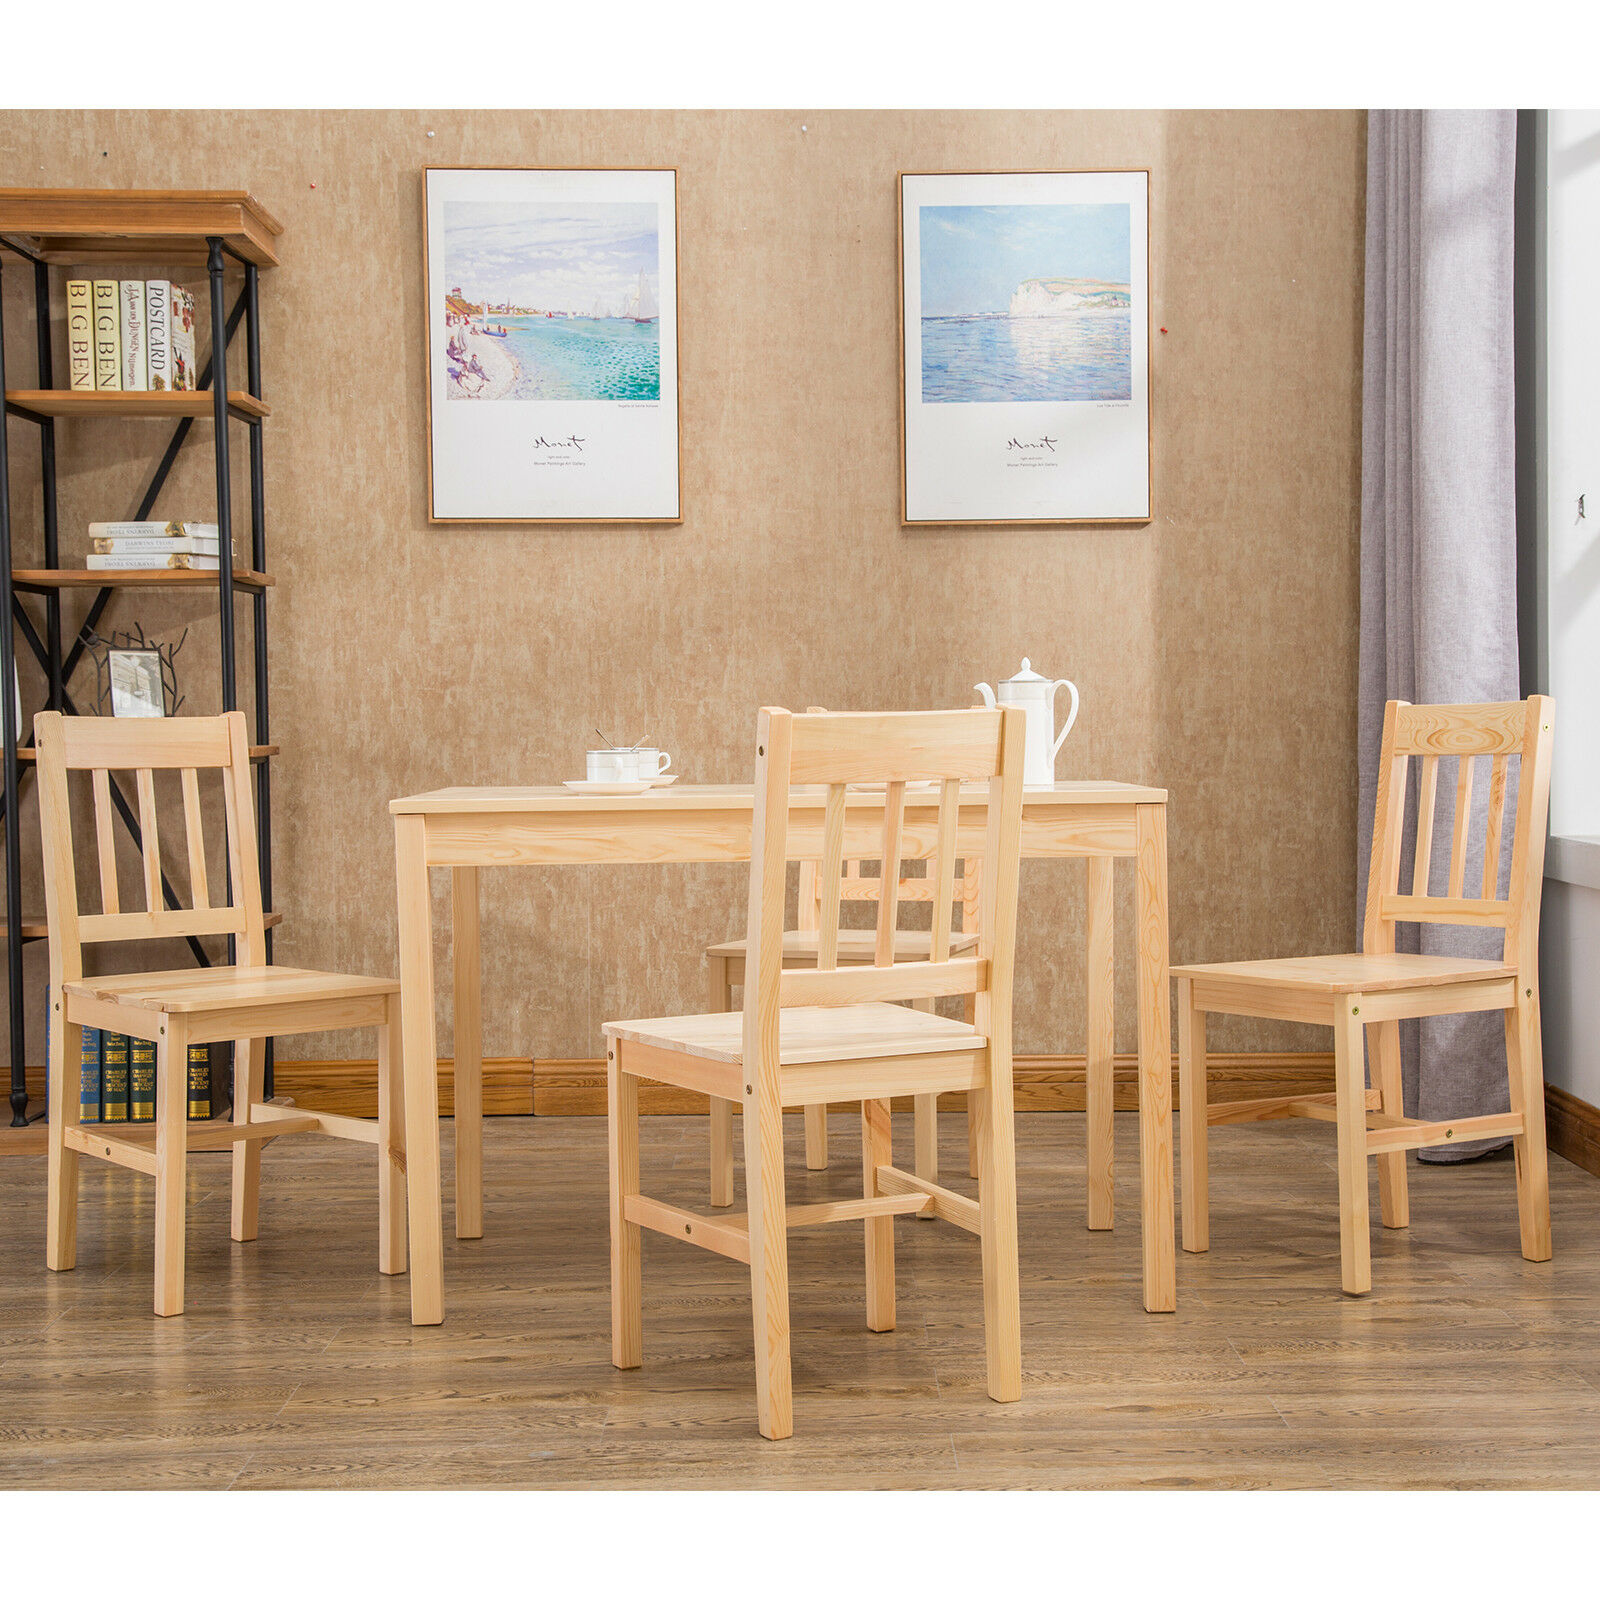 Details About Nature 5 Pcs Pine Wood Dining Table Set W 4 Chairs Kitchen Room Furniture